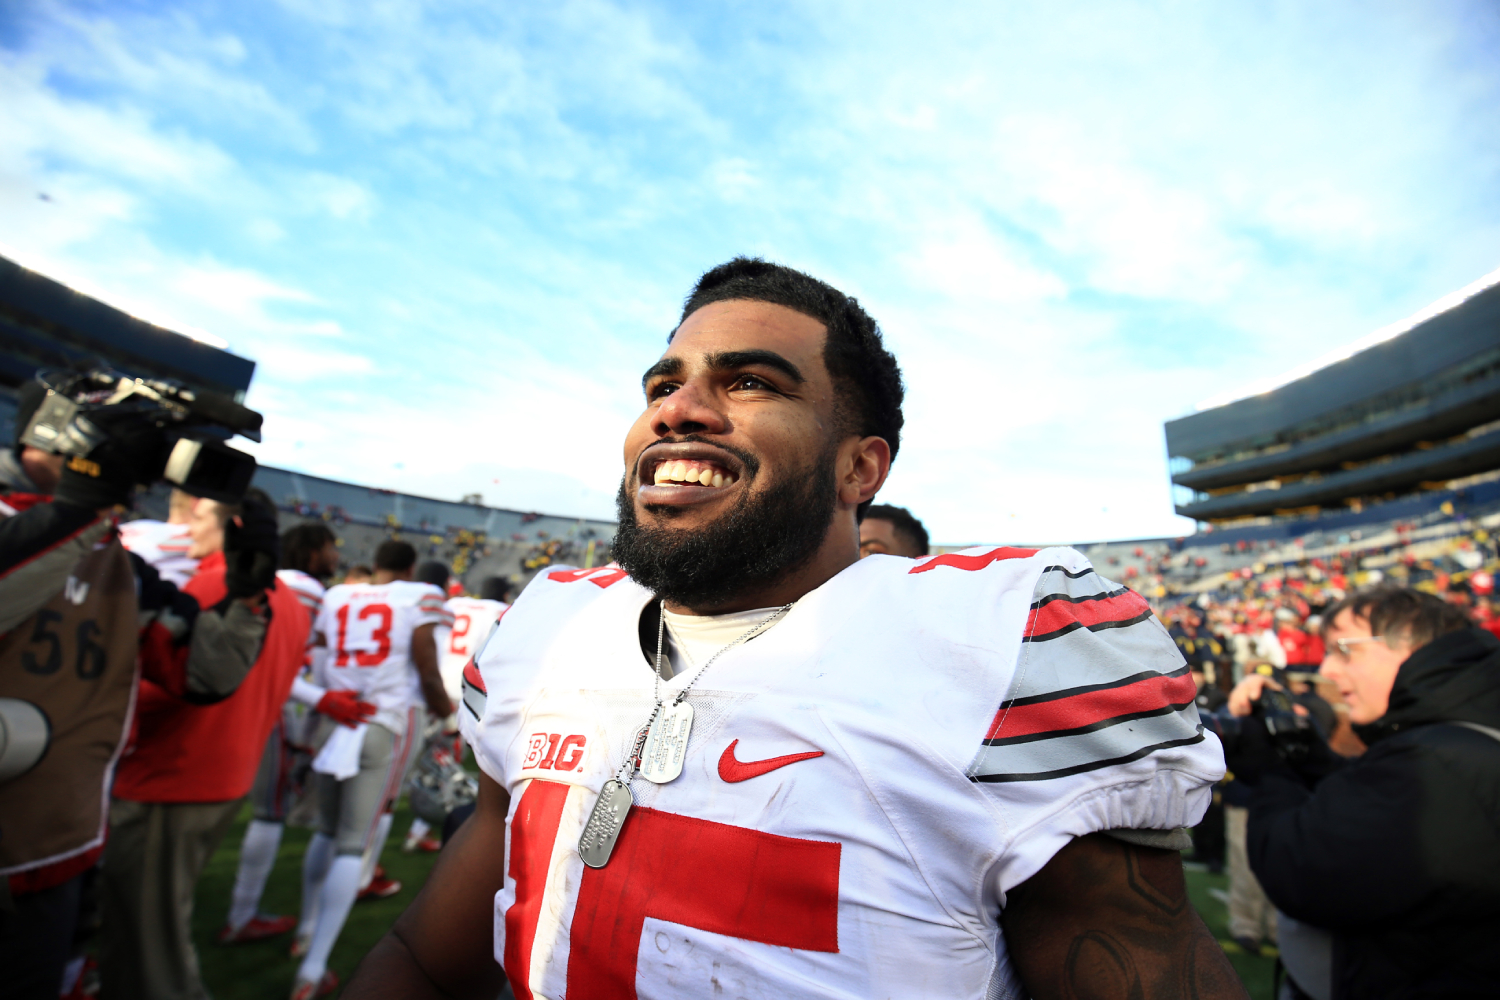 Ezekiel Elliott had a lot of success at Ohio State and has been great for the Dallas Cowboys. Is he on Ohio State's Mount Rushmore?